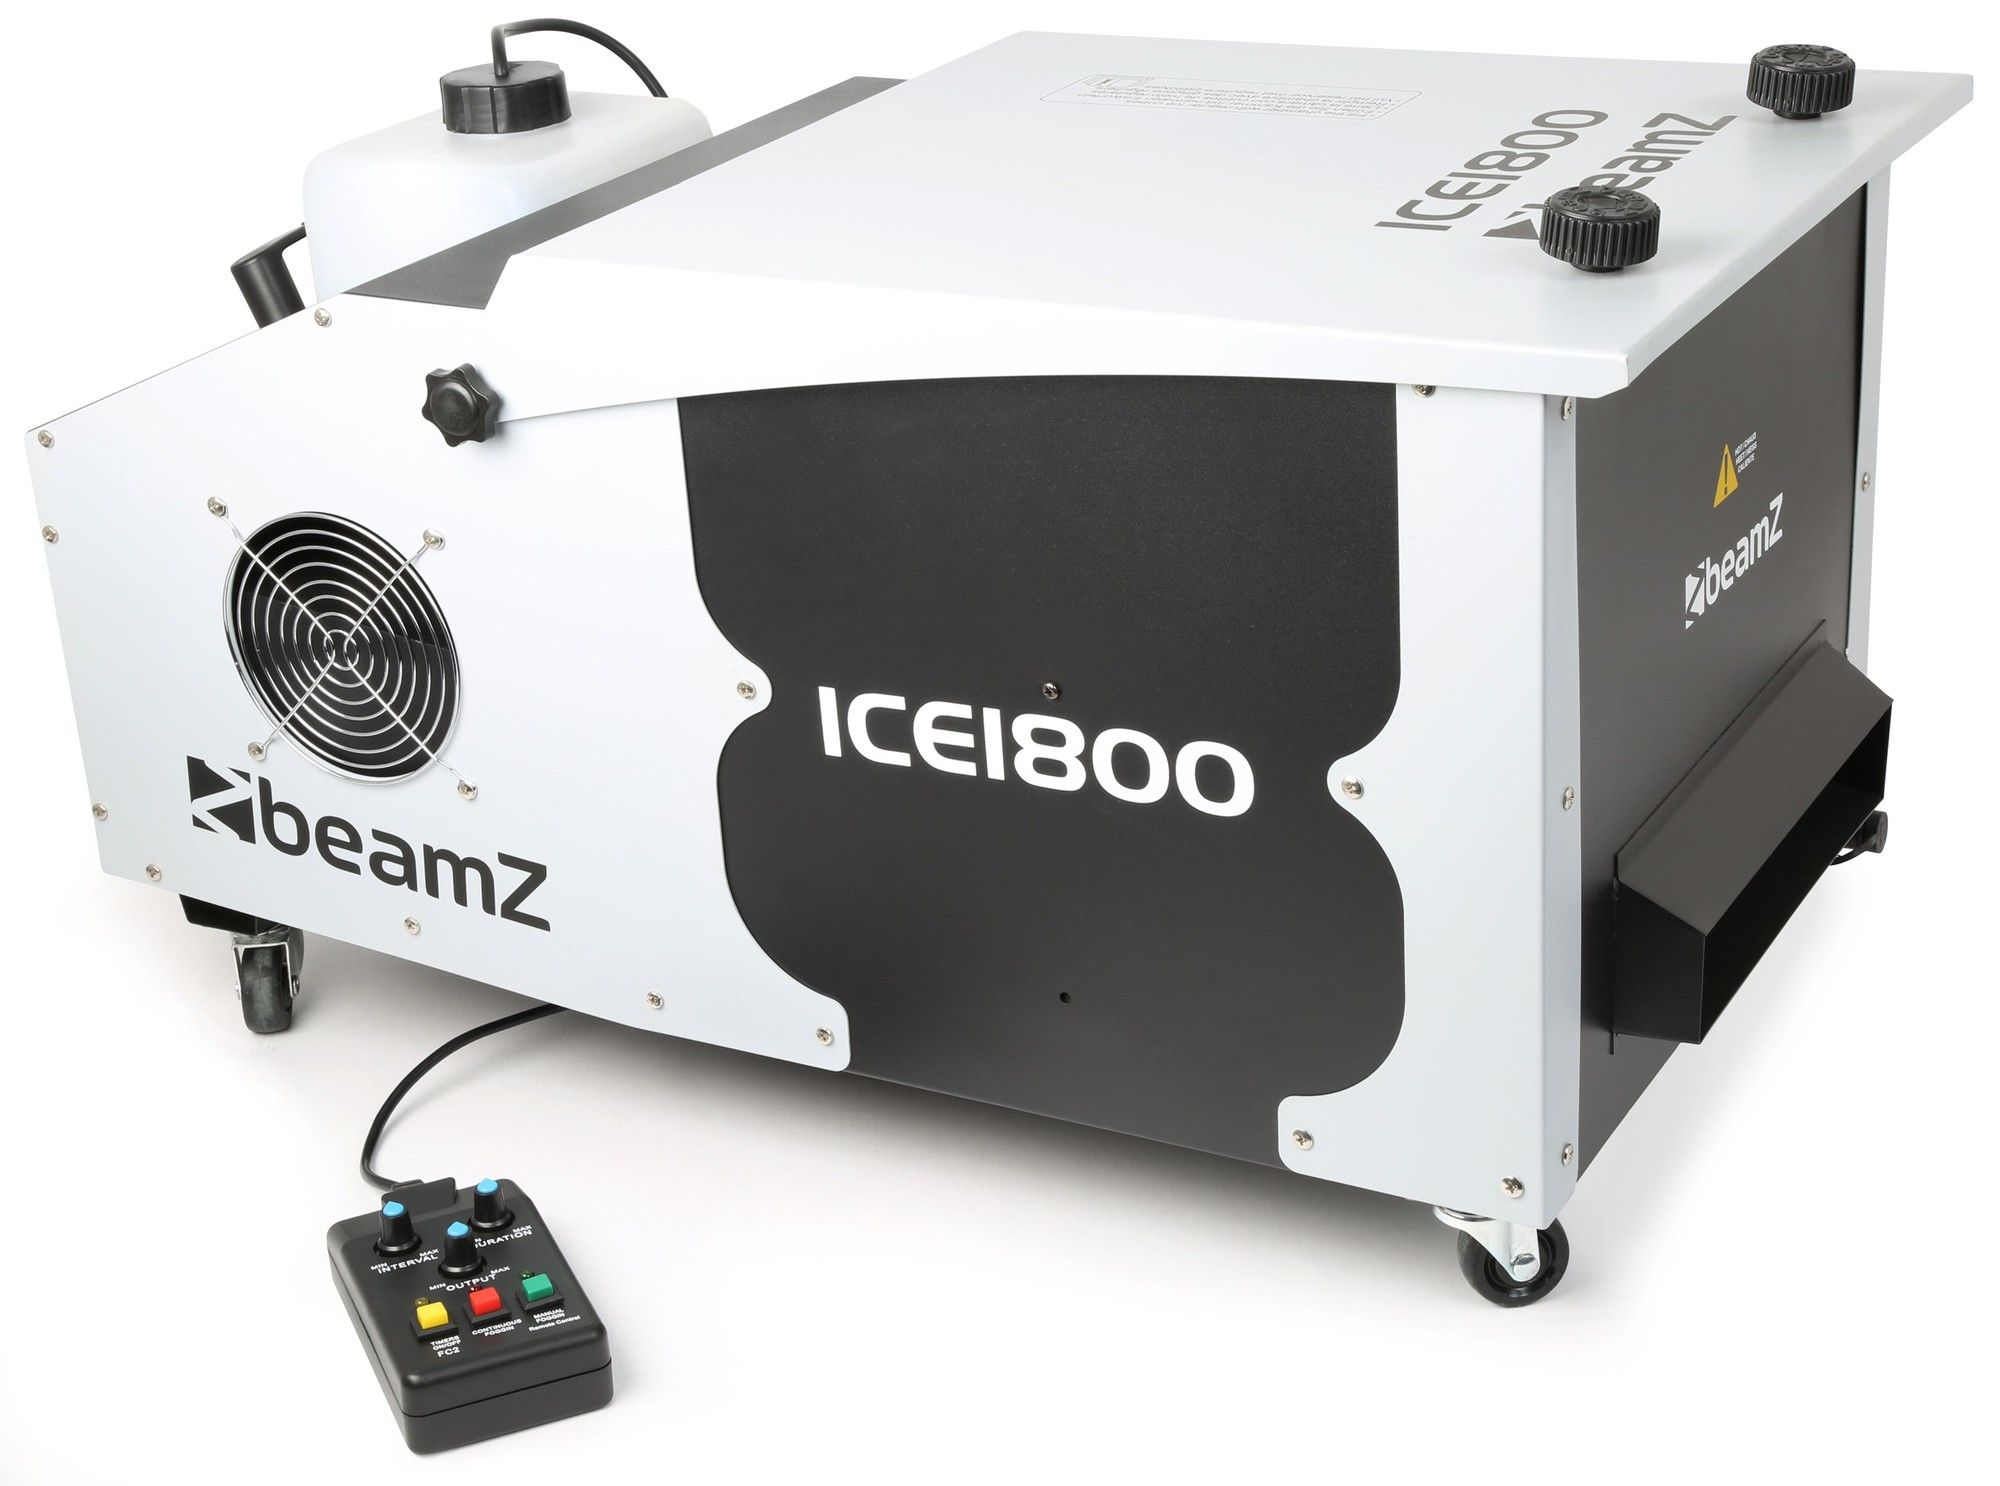 BeamZ ICE1800 IJsgekoelde rookmachine